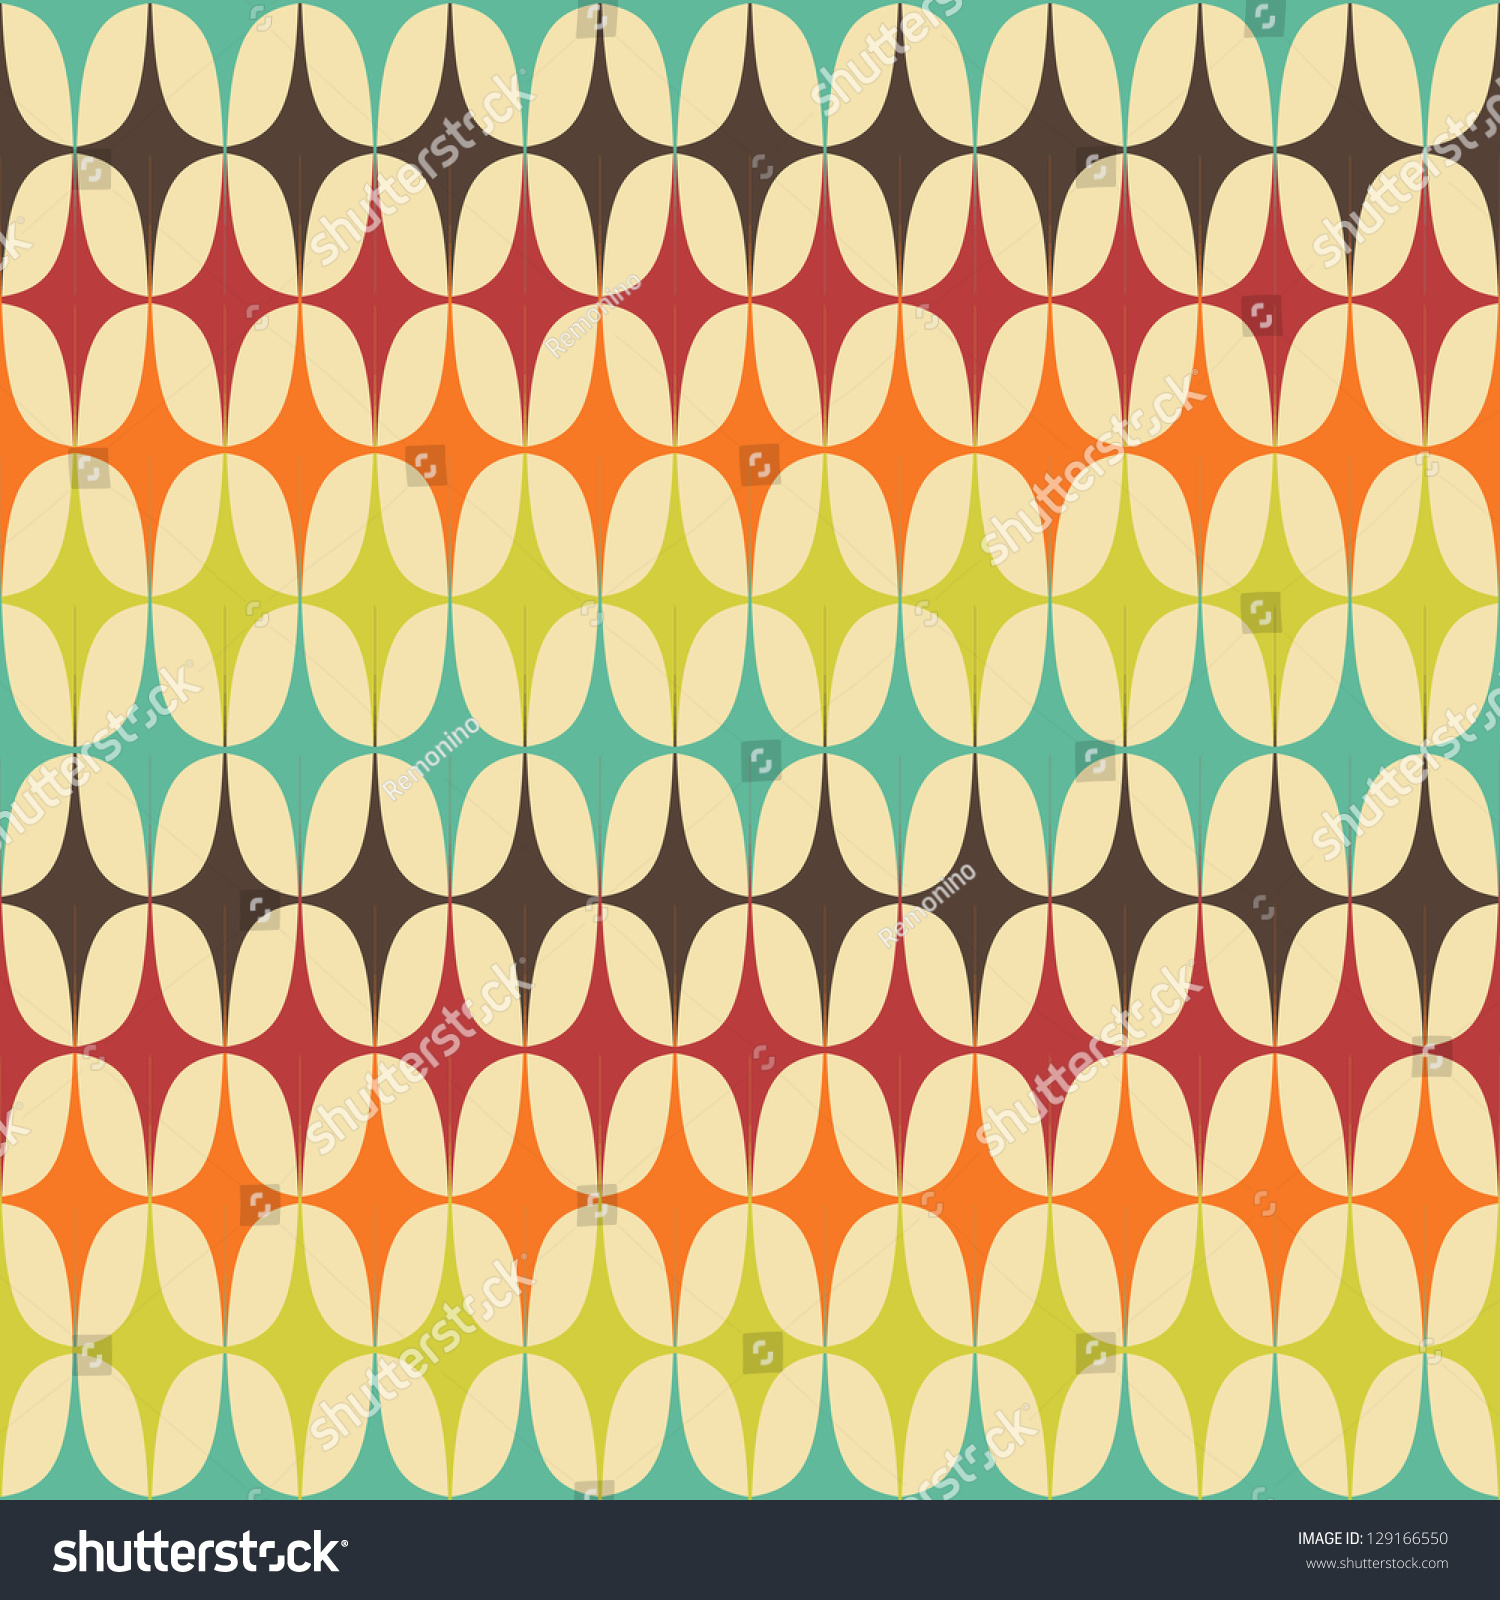 Abstract retro geometric seamless pattern triangles stock for Retro images